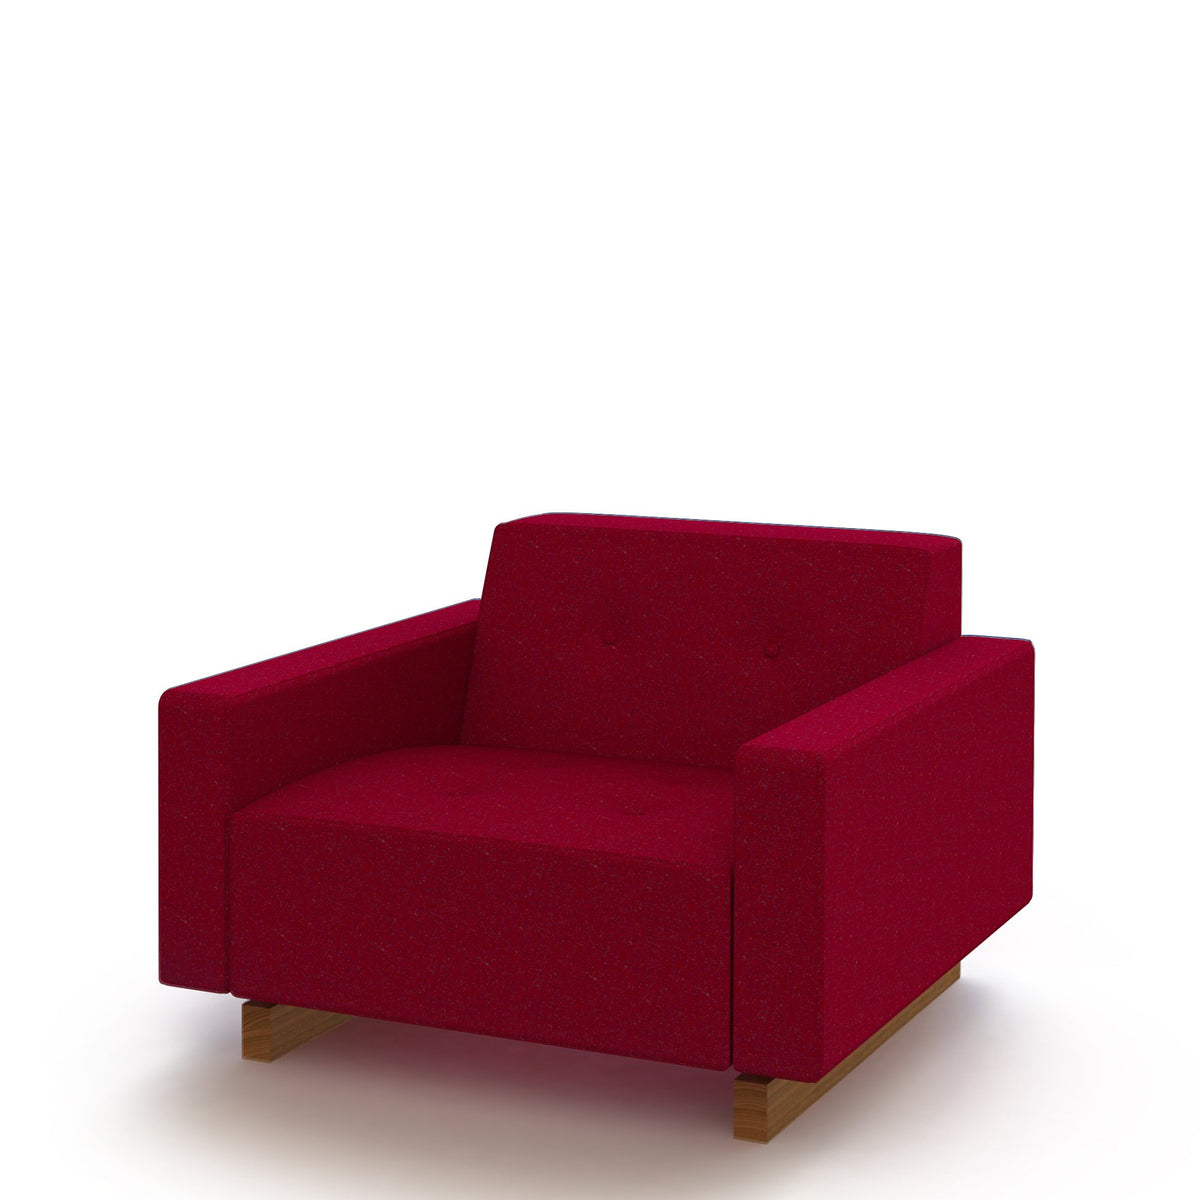 Hitch Mylius Office HM46 Kilburn Abbey Armchair